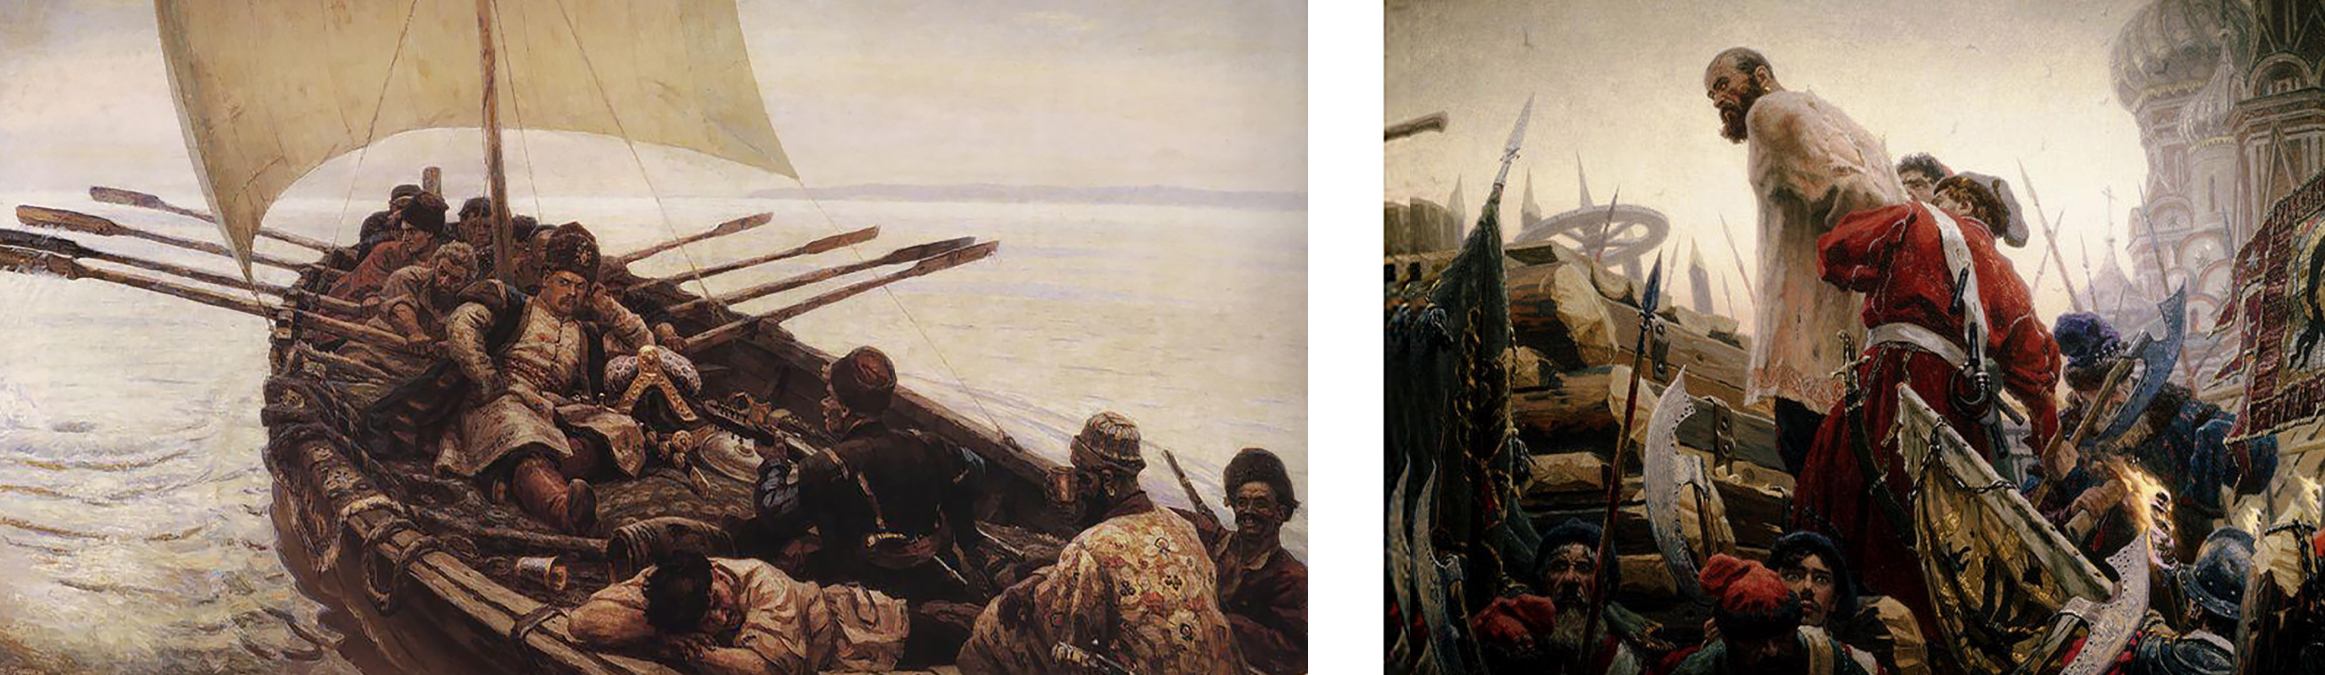 "[left] ""Stepan Razin Sailing in the Caspian Sea"" and [right] ""The Execution of Stepan"" both painted by Vasily Surikov in 1906"